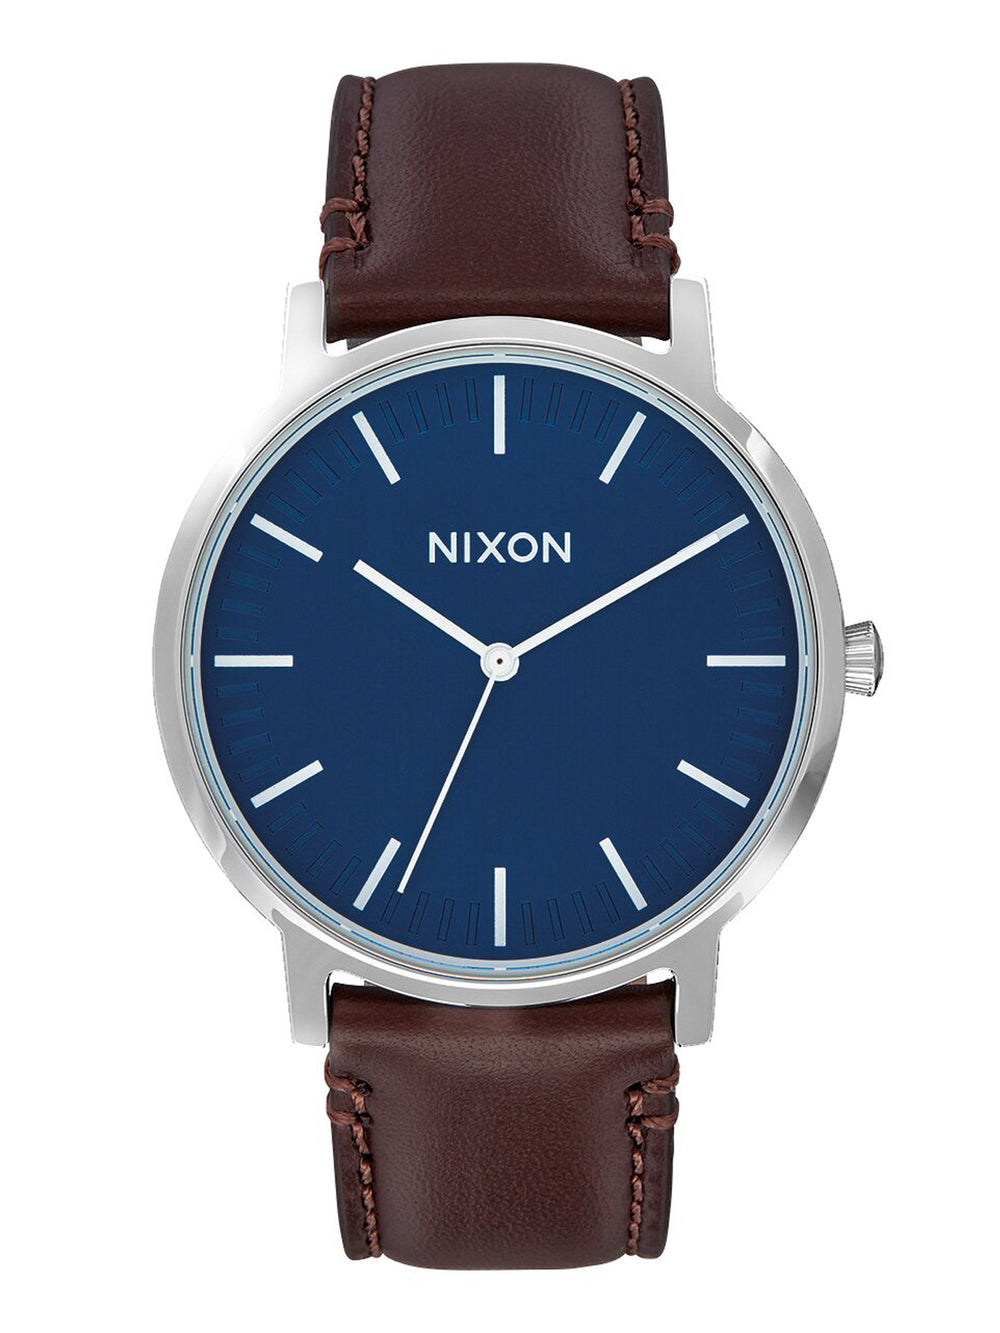 MENS PORTER LEATHER - NAVY/BROWN WATCH